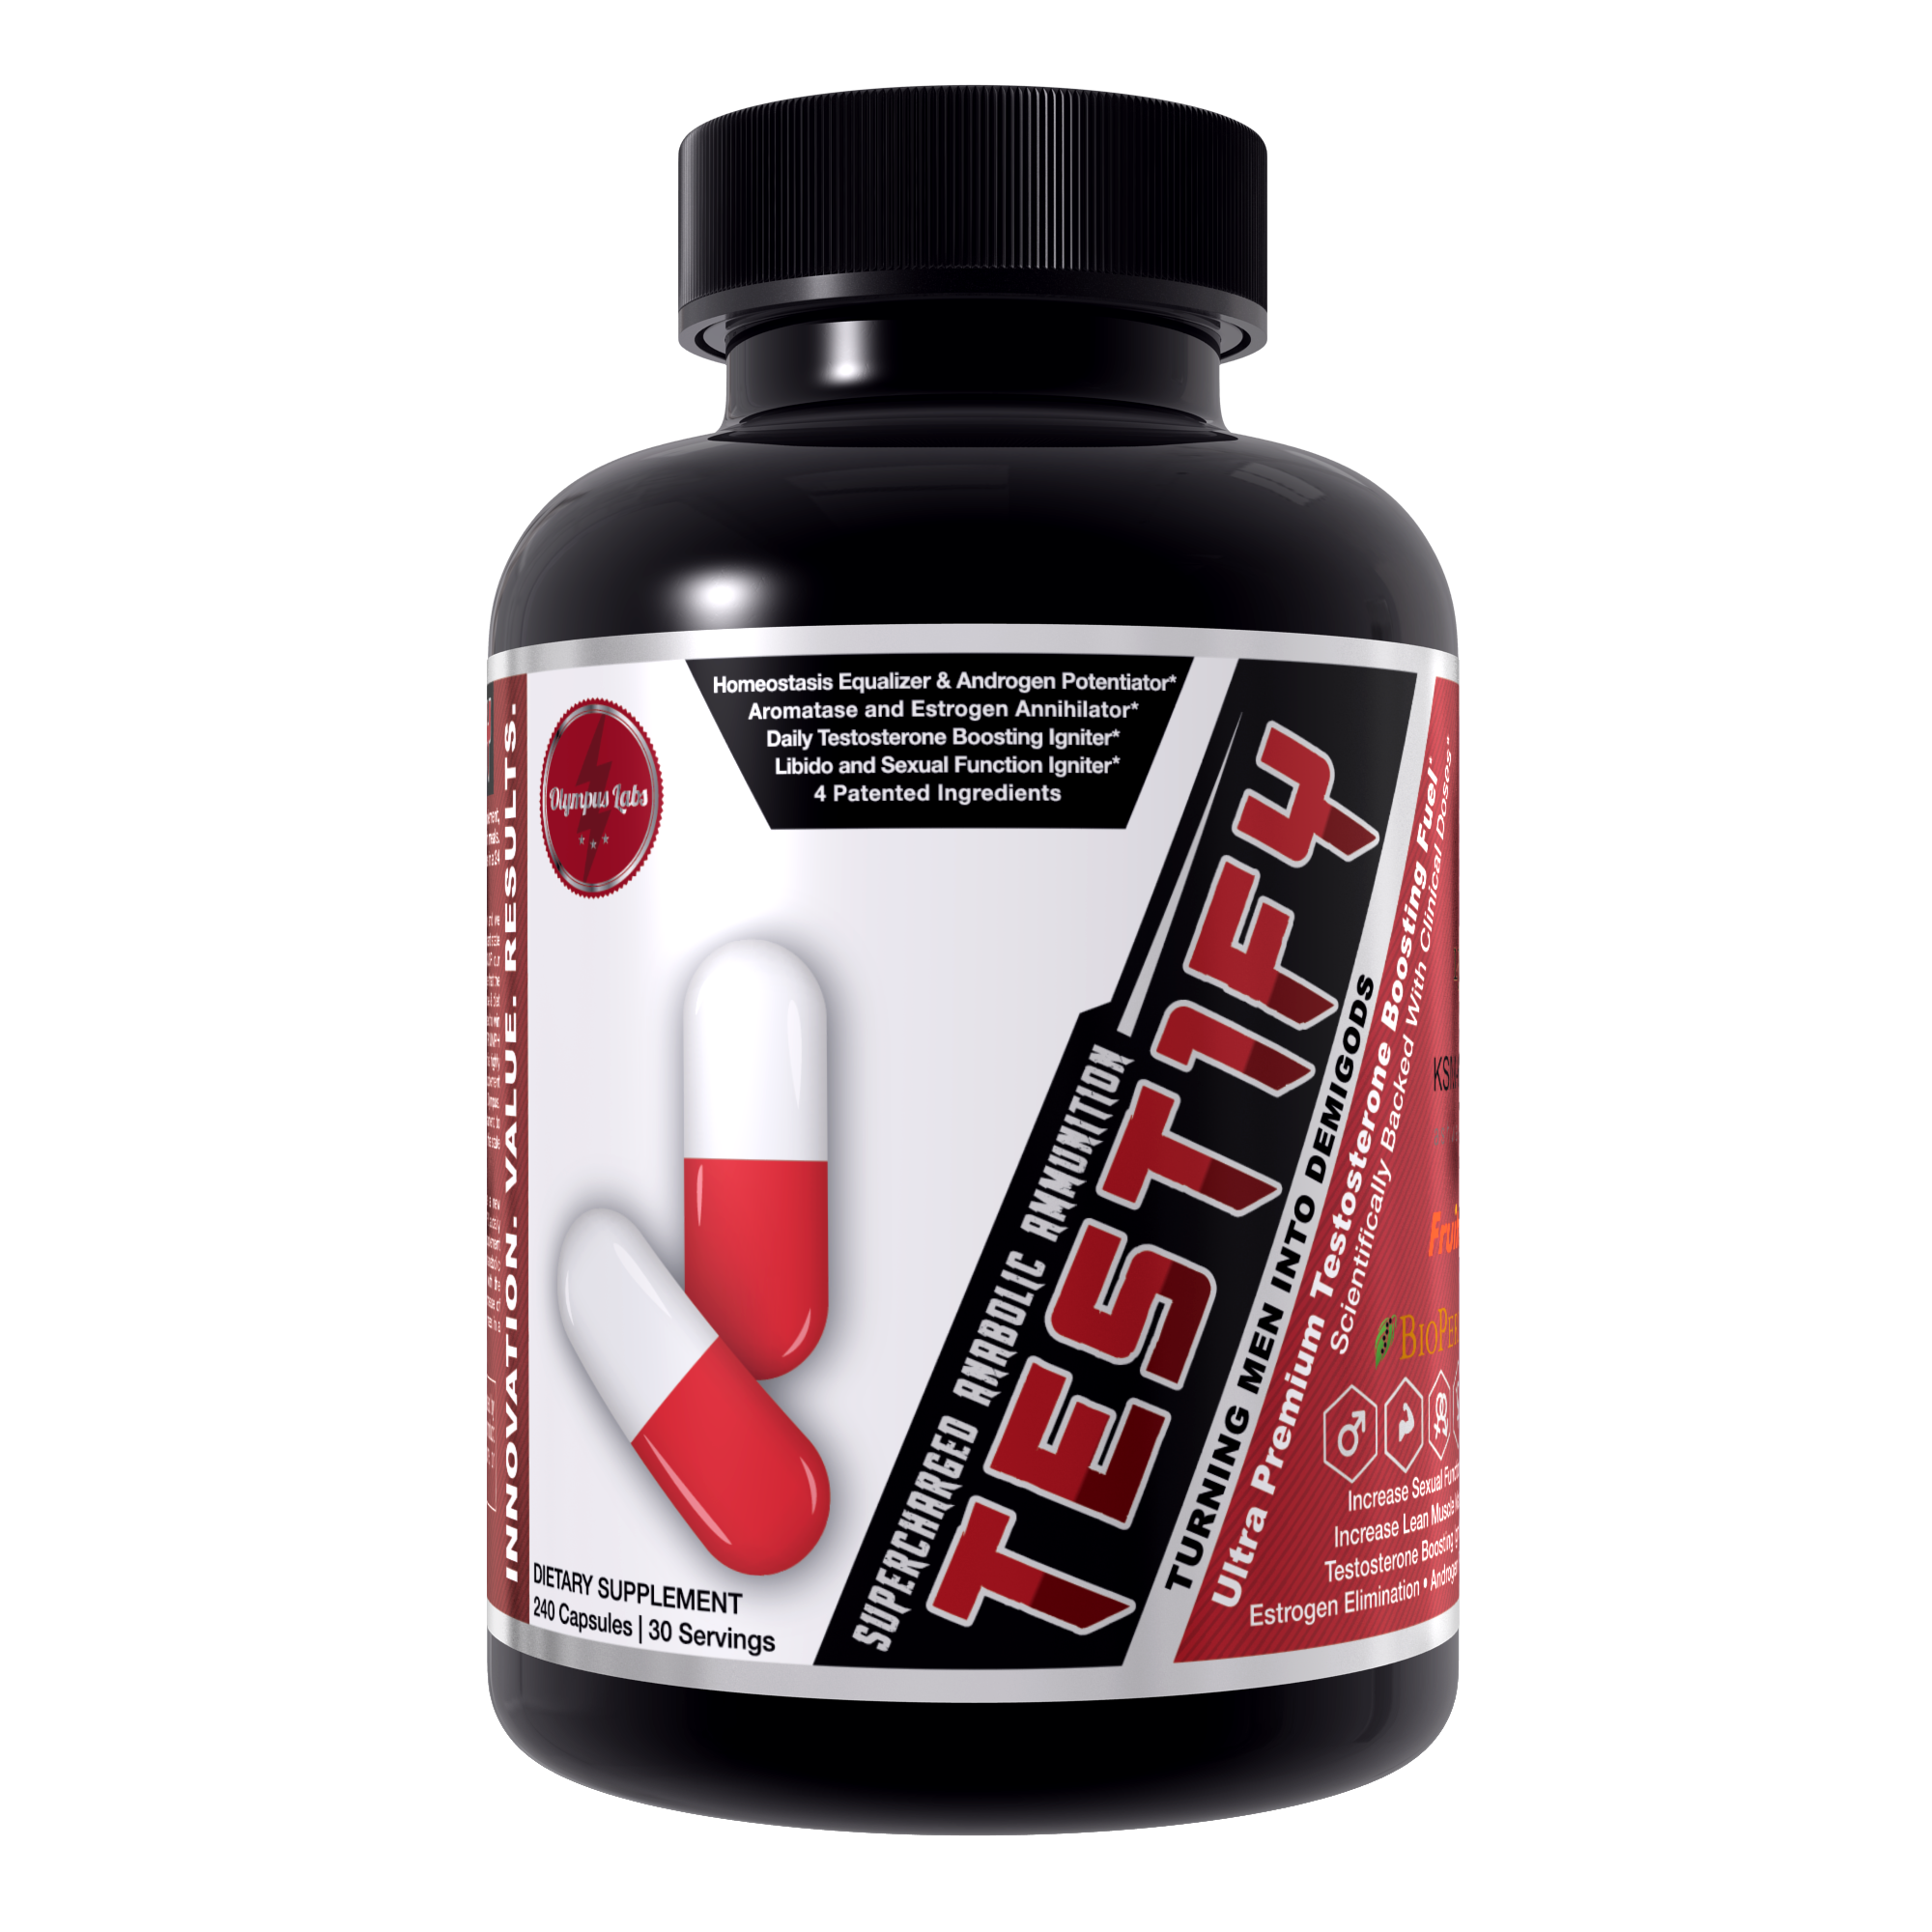 Testify - 10 testosterone booster